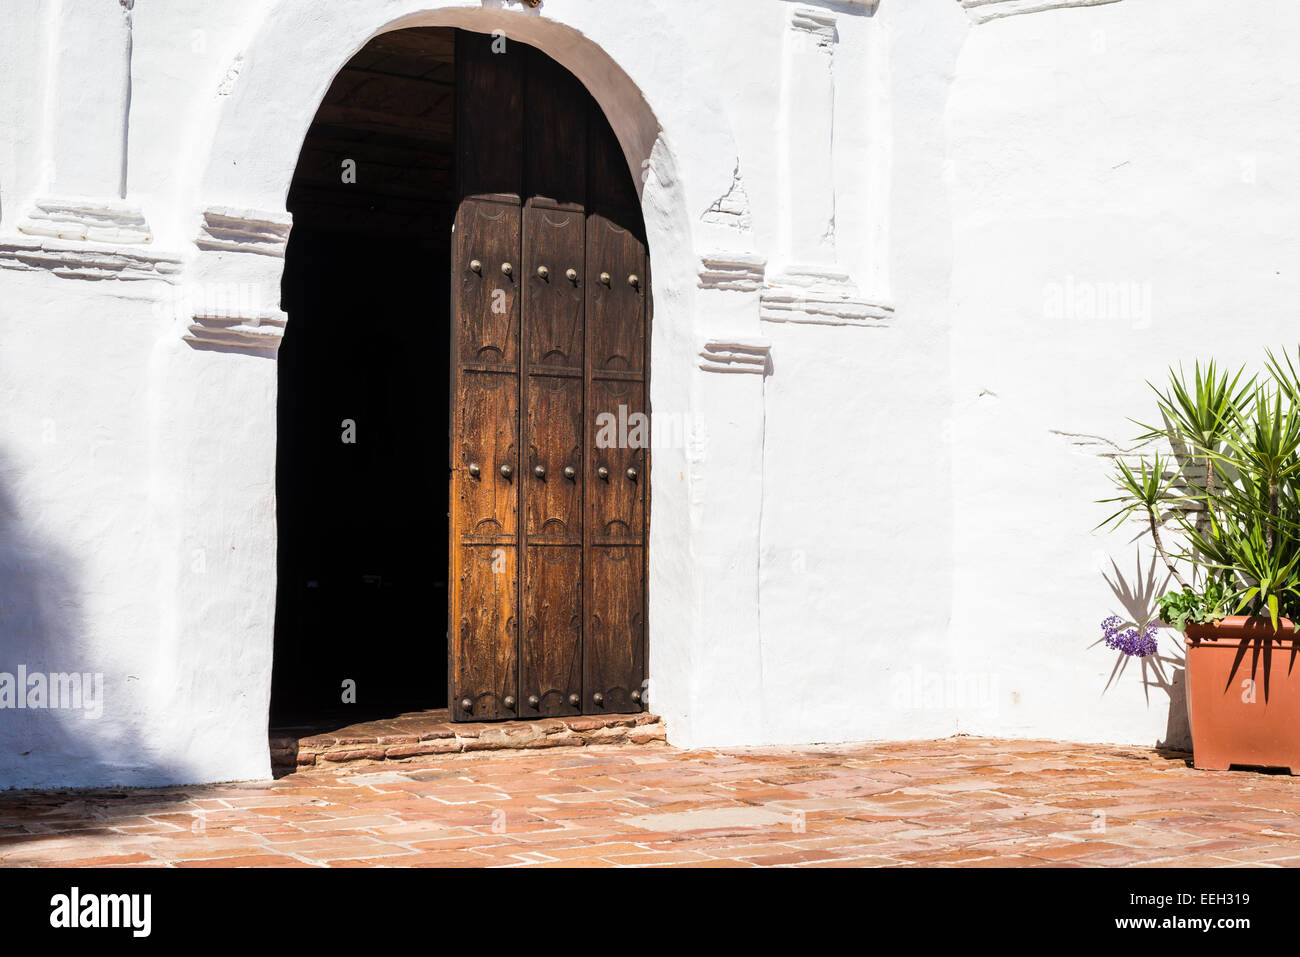 Front Door At The Mission Basilica San Diego De Alcala Building